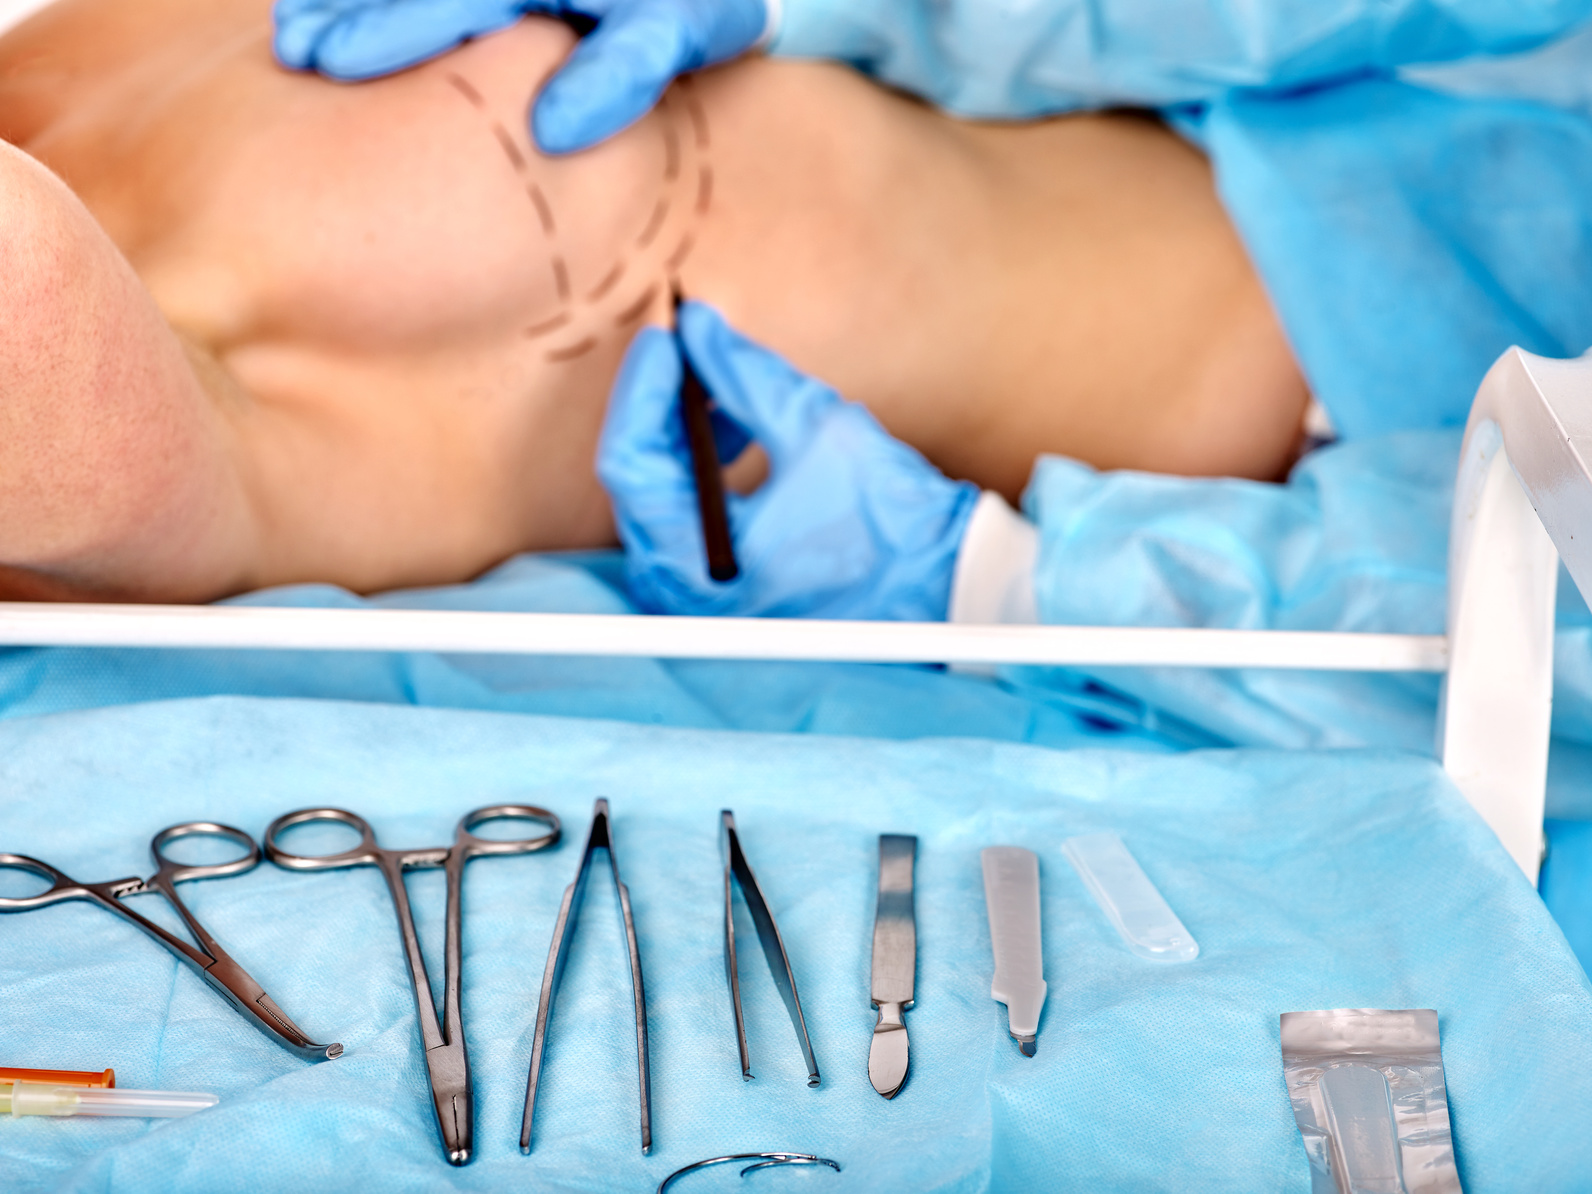 Breast cancer surgery. Doctor makes dotted line on female body. Surgical Instruments on foreground.